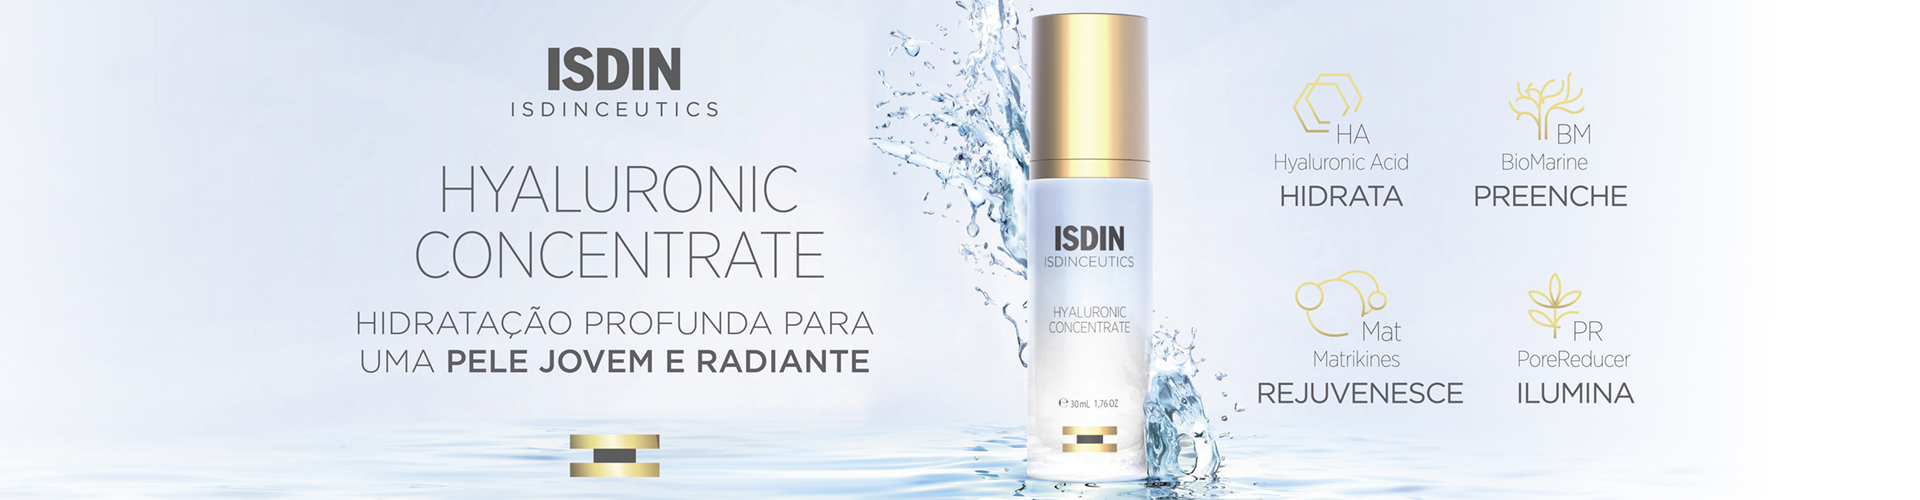 Isdin Hyaluronic concentrate